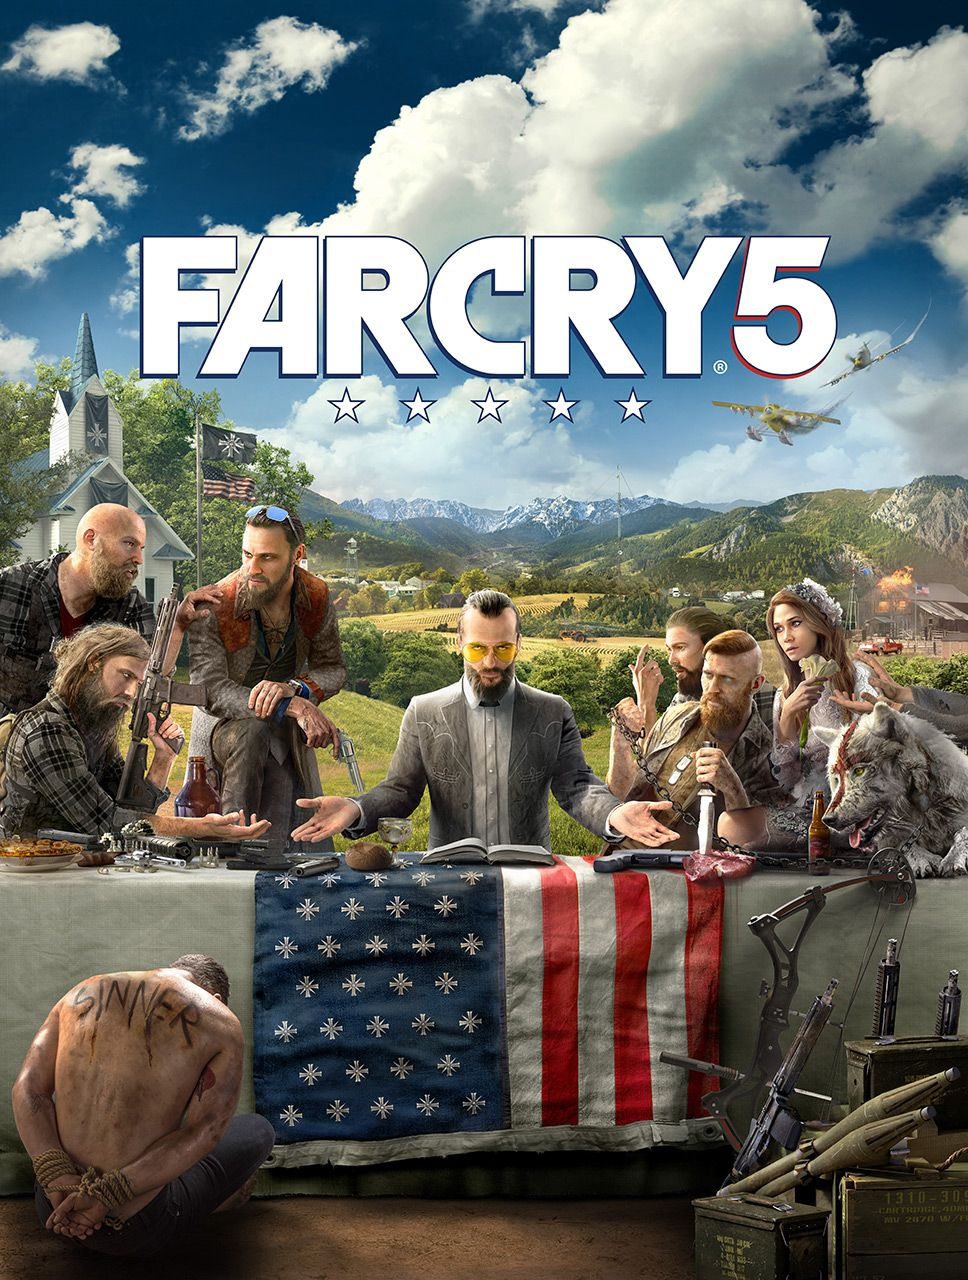 New Fay Cry 5 Artwork Released Ahead Of Friday's Reveal